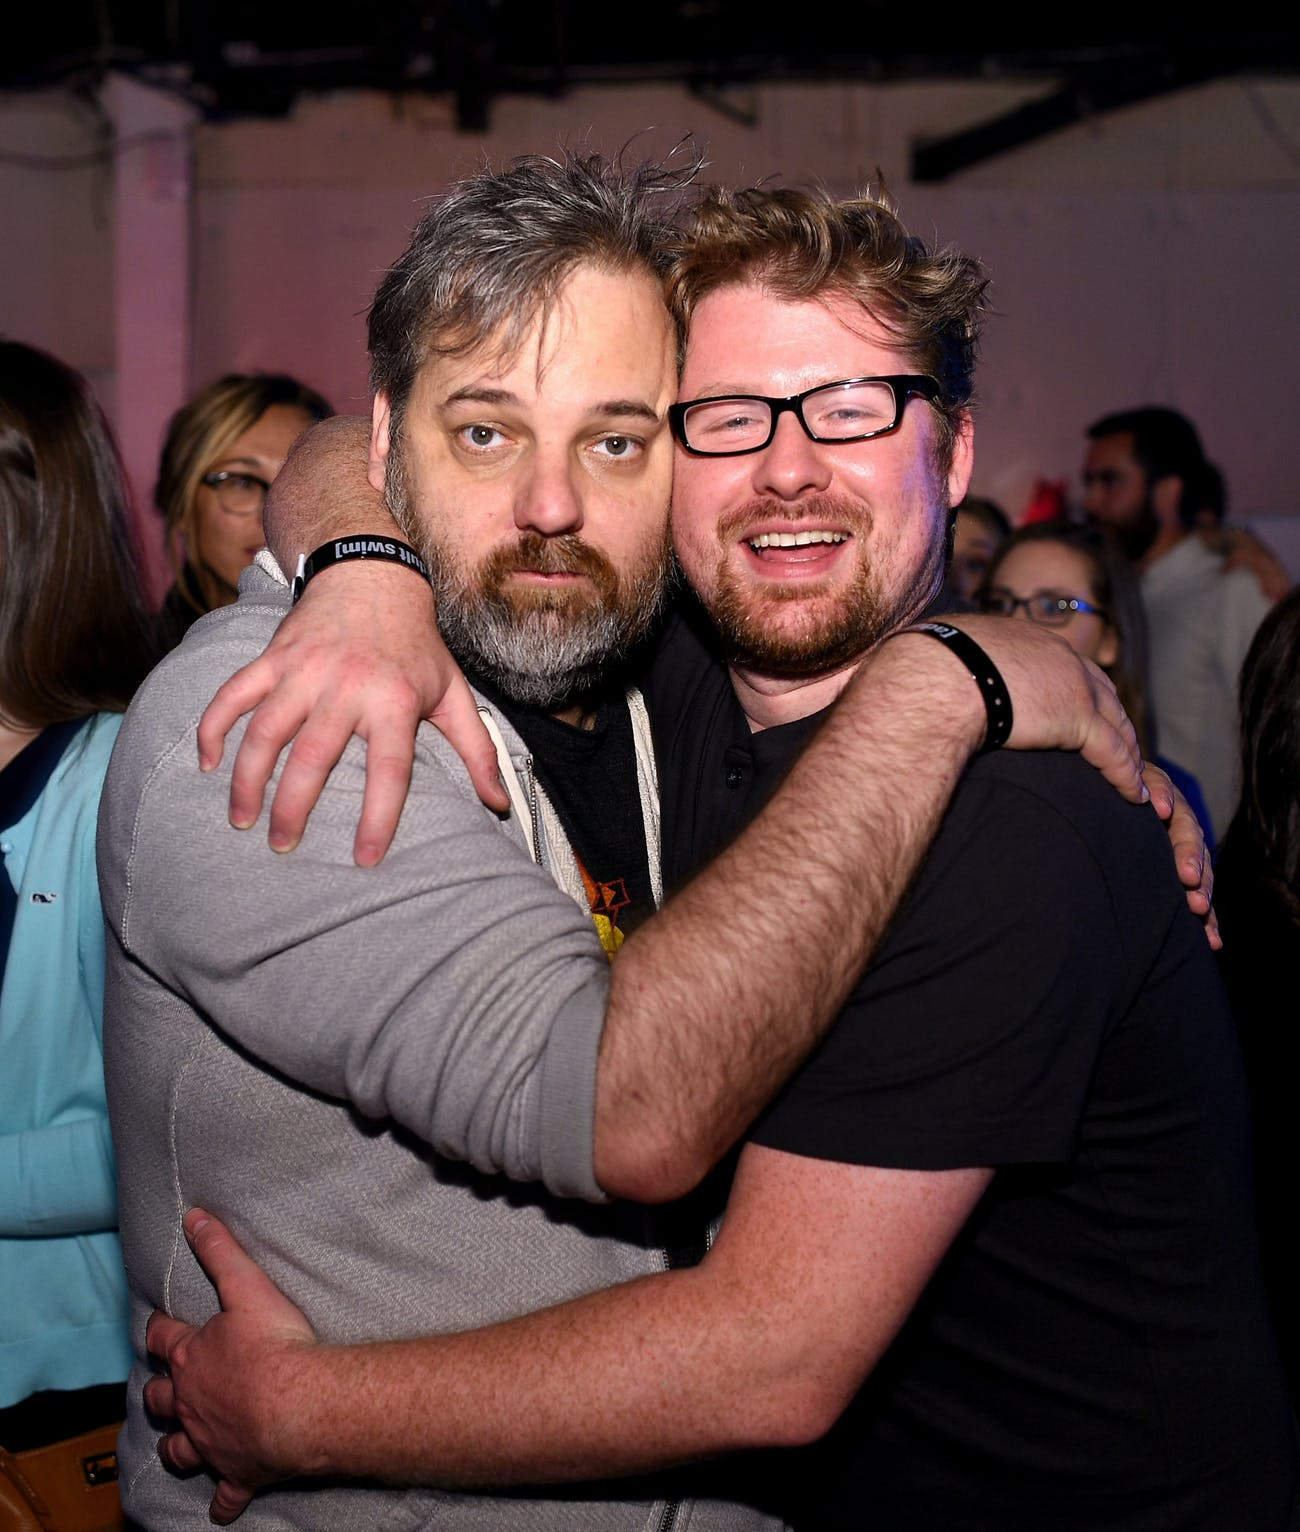 NEW YORK, NY - MAY 13: Dan Harmon and Justin Roiland attends the 2015 Adult Swim Upfront Party at Terminal 5 on May 13, 2015 in New York City. 25515_002_0244.JPG (Photo by Dimitrios Kambouris/Getty Images for Tuner)